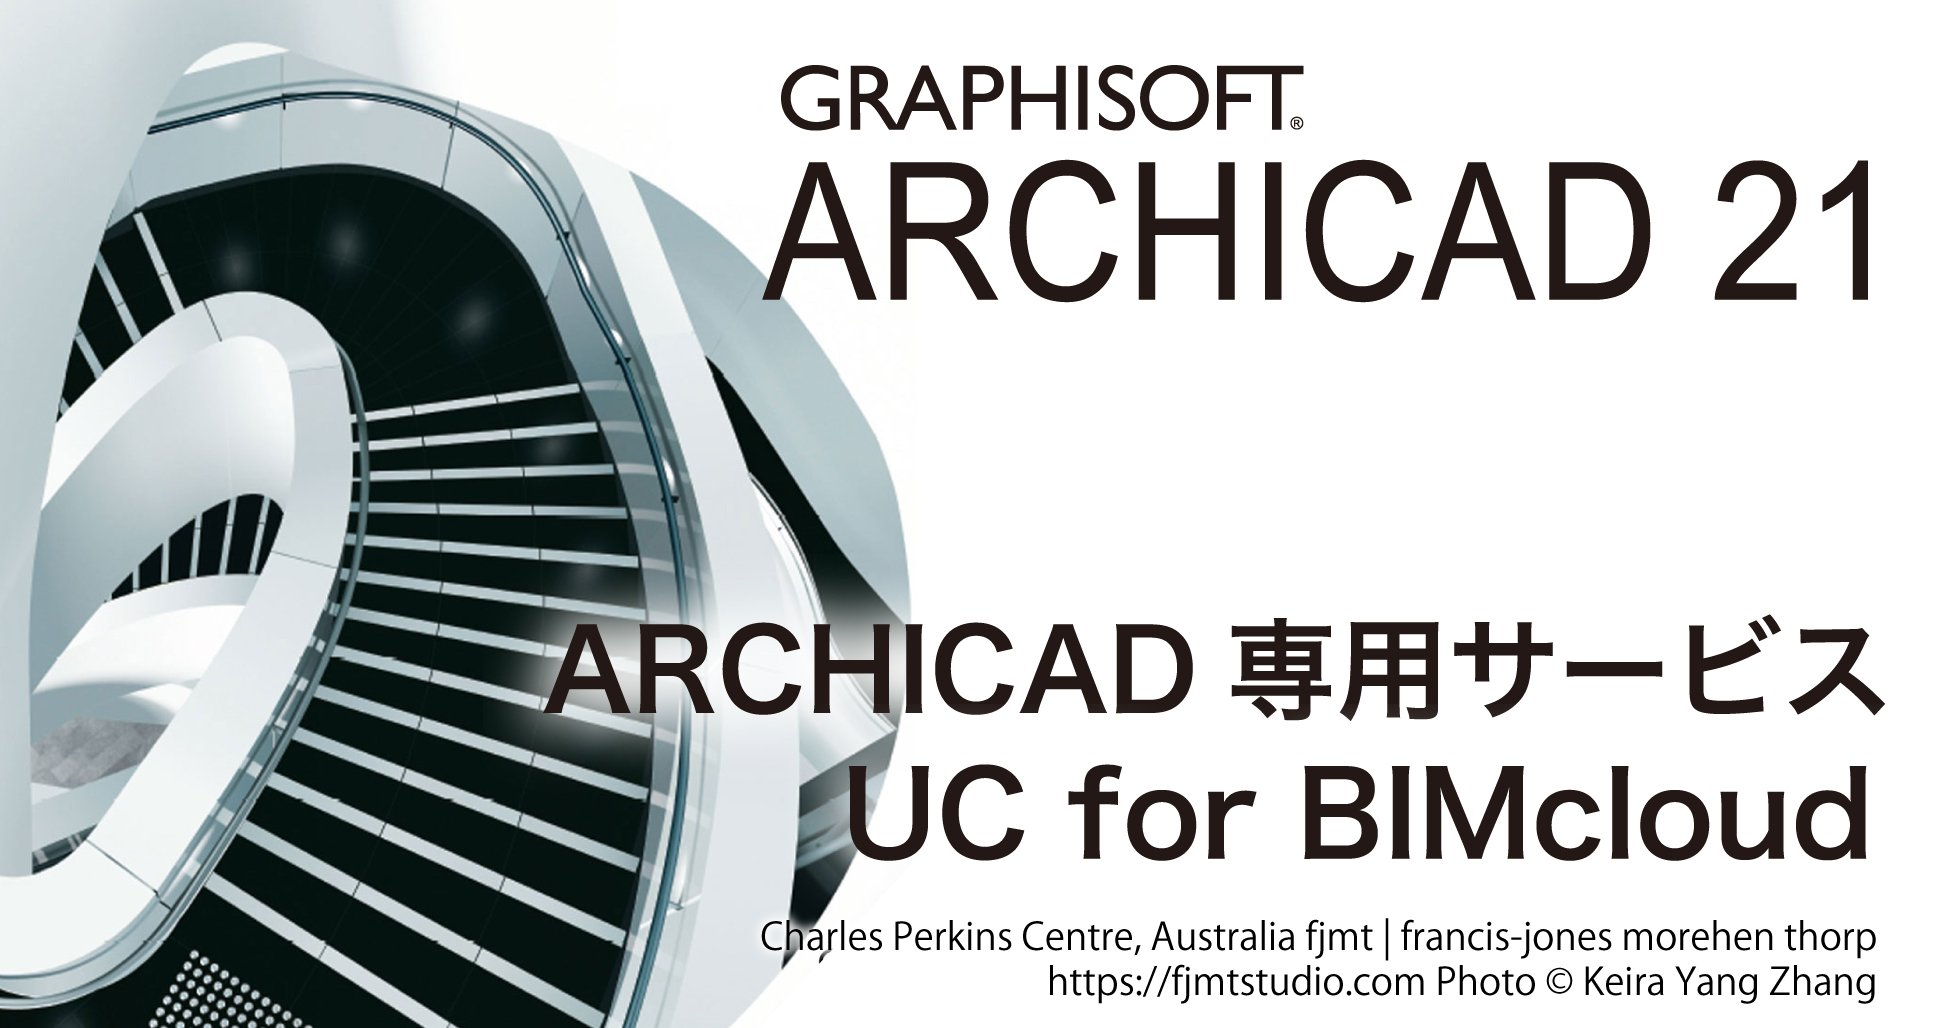 ARCHICAD専用サービス UC for BIMcloud